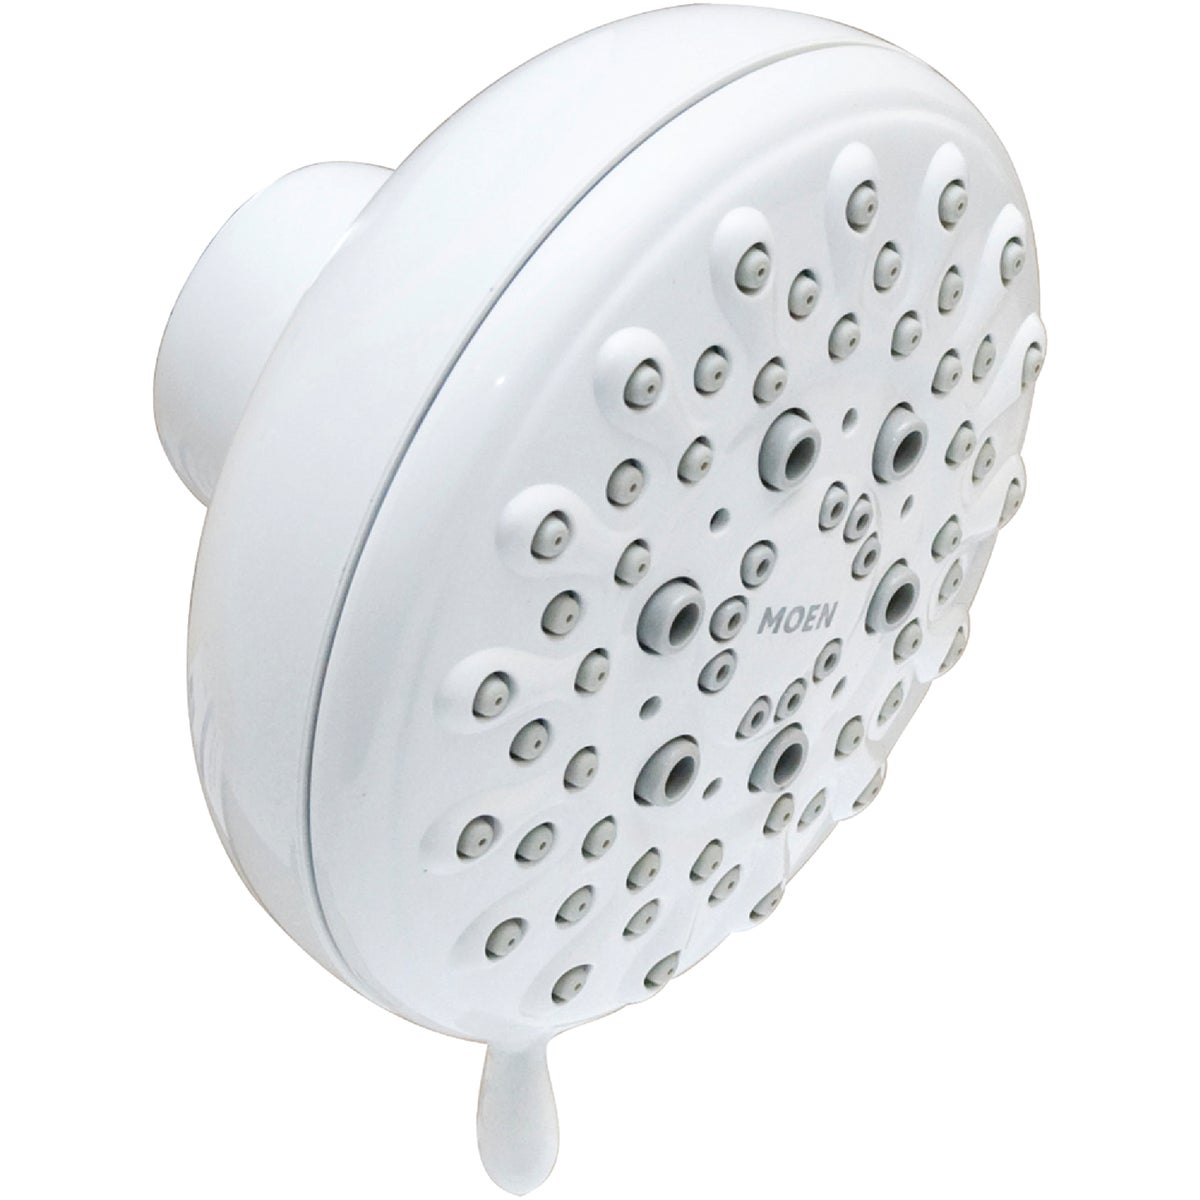 WHITE 5-SET SHOWERHEAD - 23016W by Moen Inc